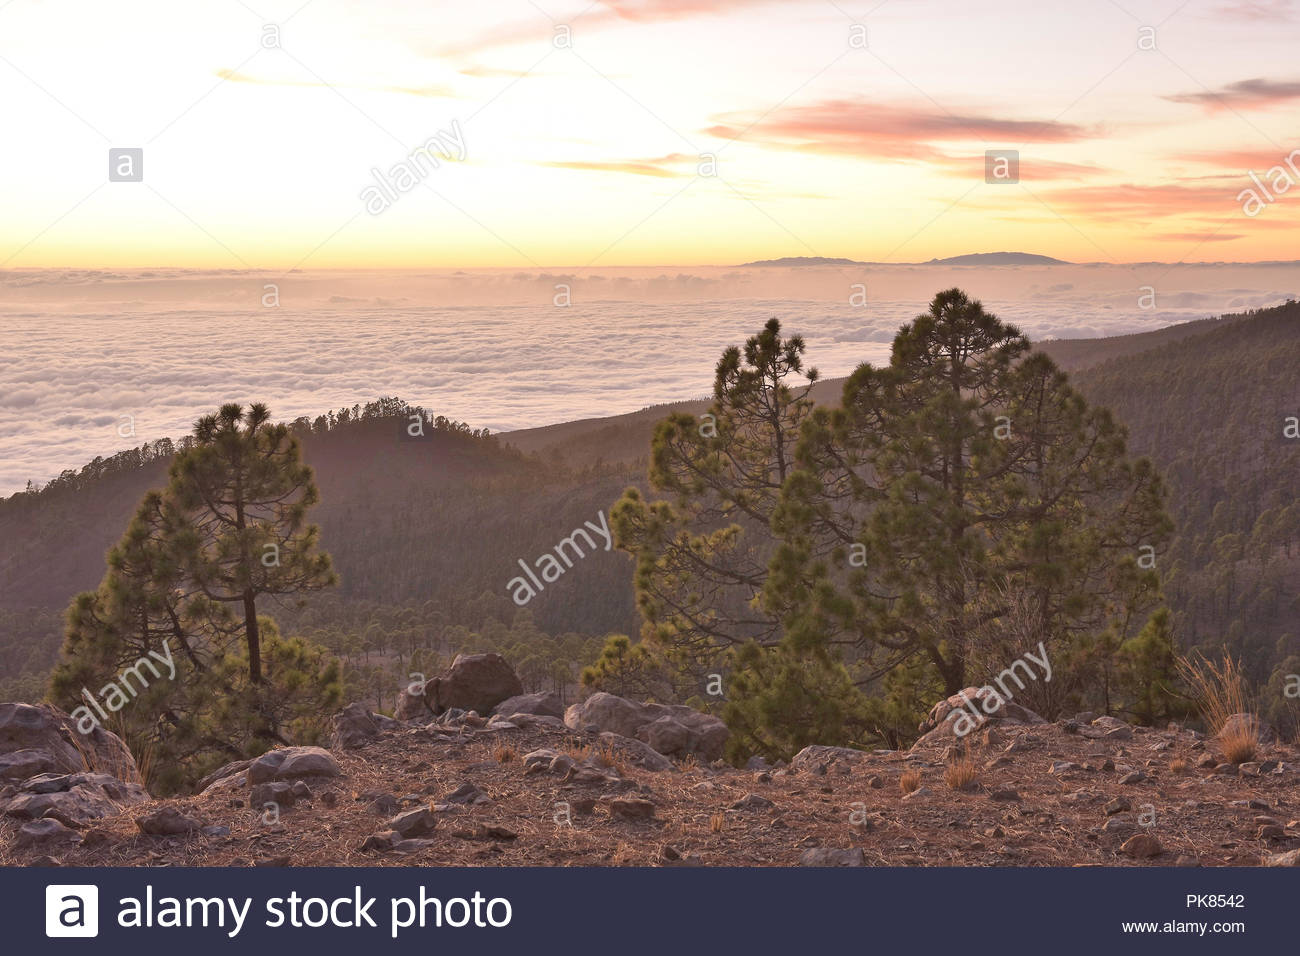 Corona Forestal Natural Park, pine trees (Pinus canariensis) grow in high altitude of Tenerife Canary Islands Spain. View above the clouds at dusk. - Stock Image